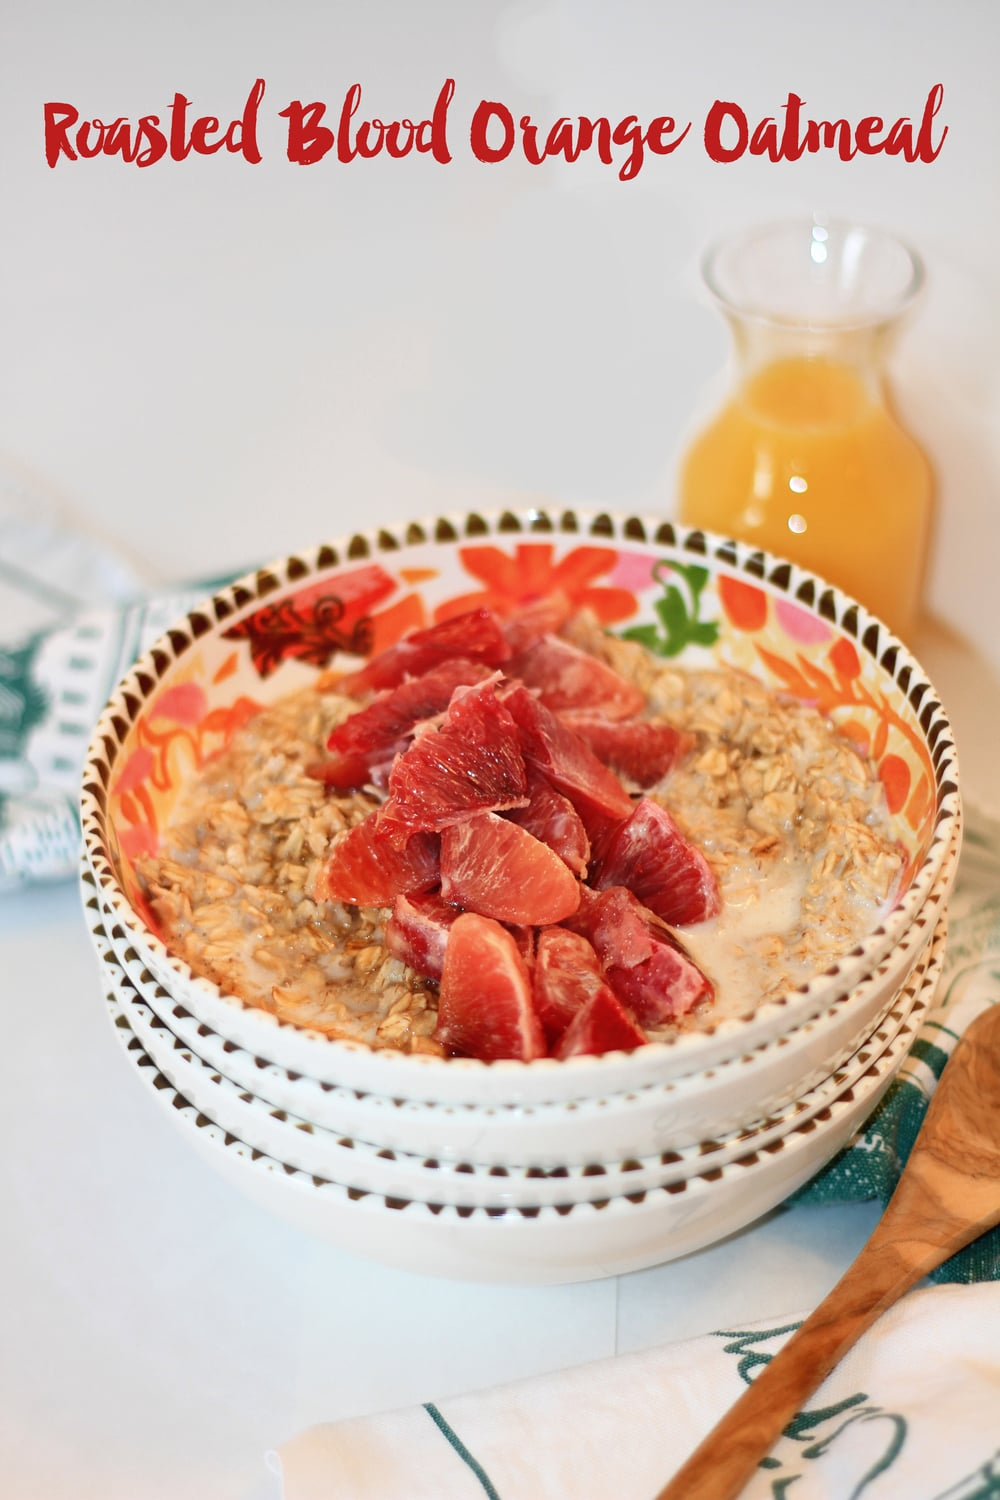 Roasted Blood Orange Oatmeal Warm and hearty breakfasts are a thing of necessity here when the weather begins to dip into the single digits. | http://tiarastantrums.com/blog/roasted-blood-orange-oatmeal #BringYourBestBowl